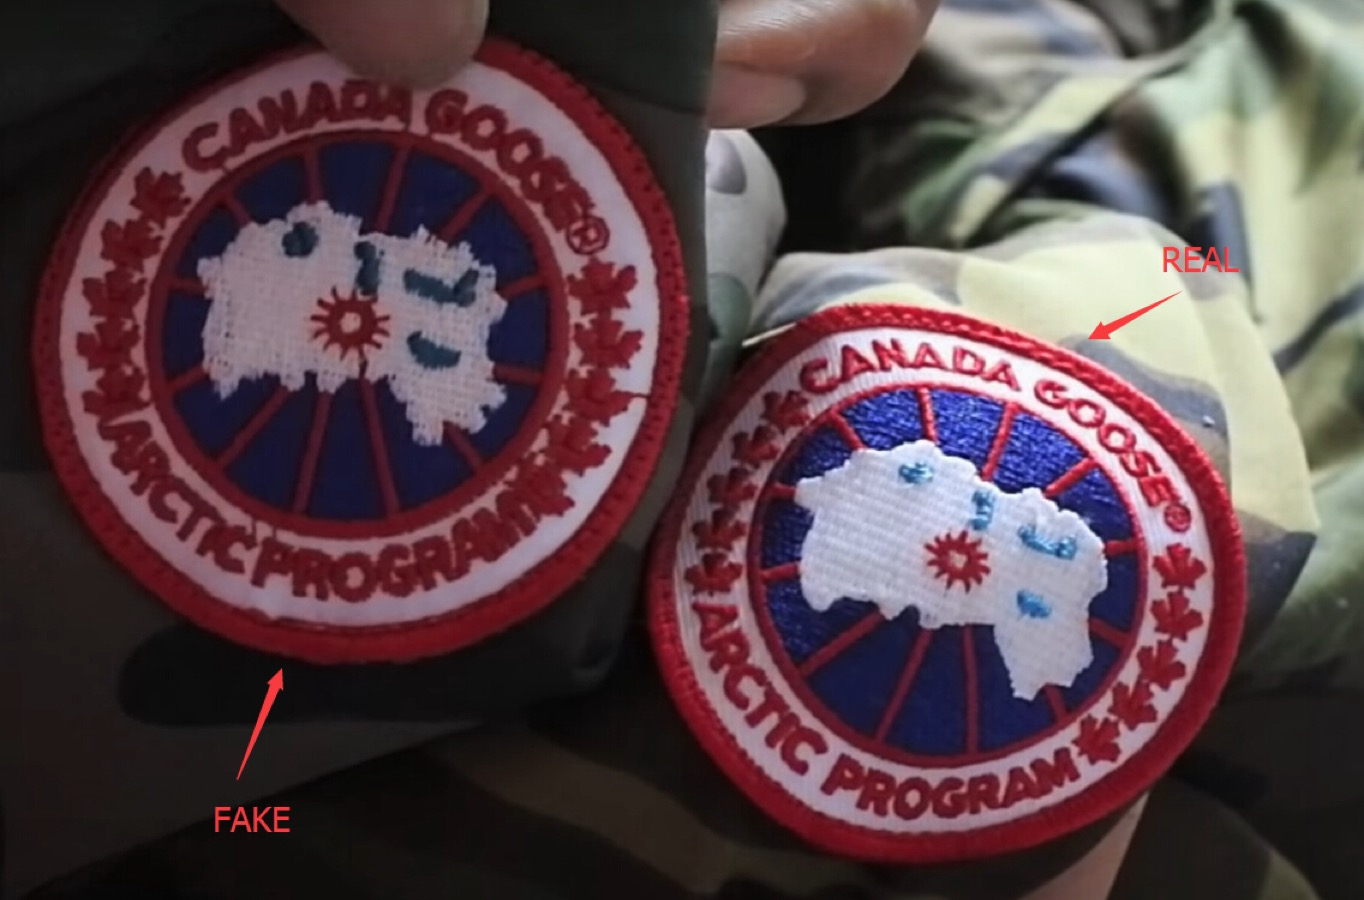 fake canada goose jackets on sale